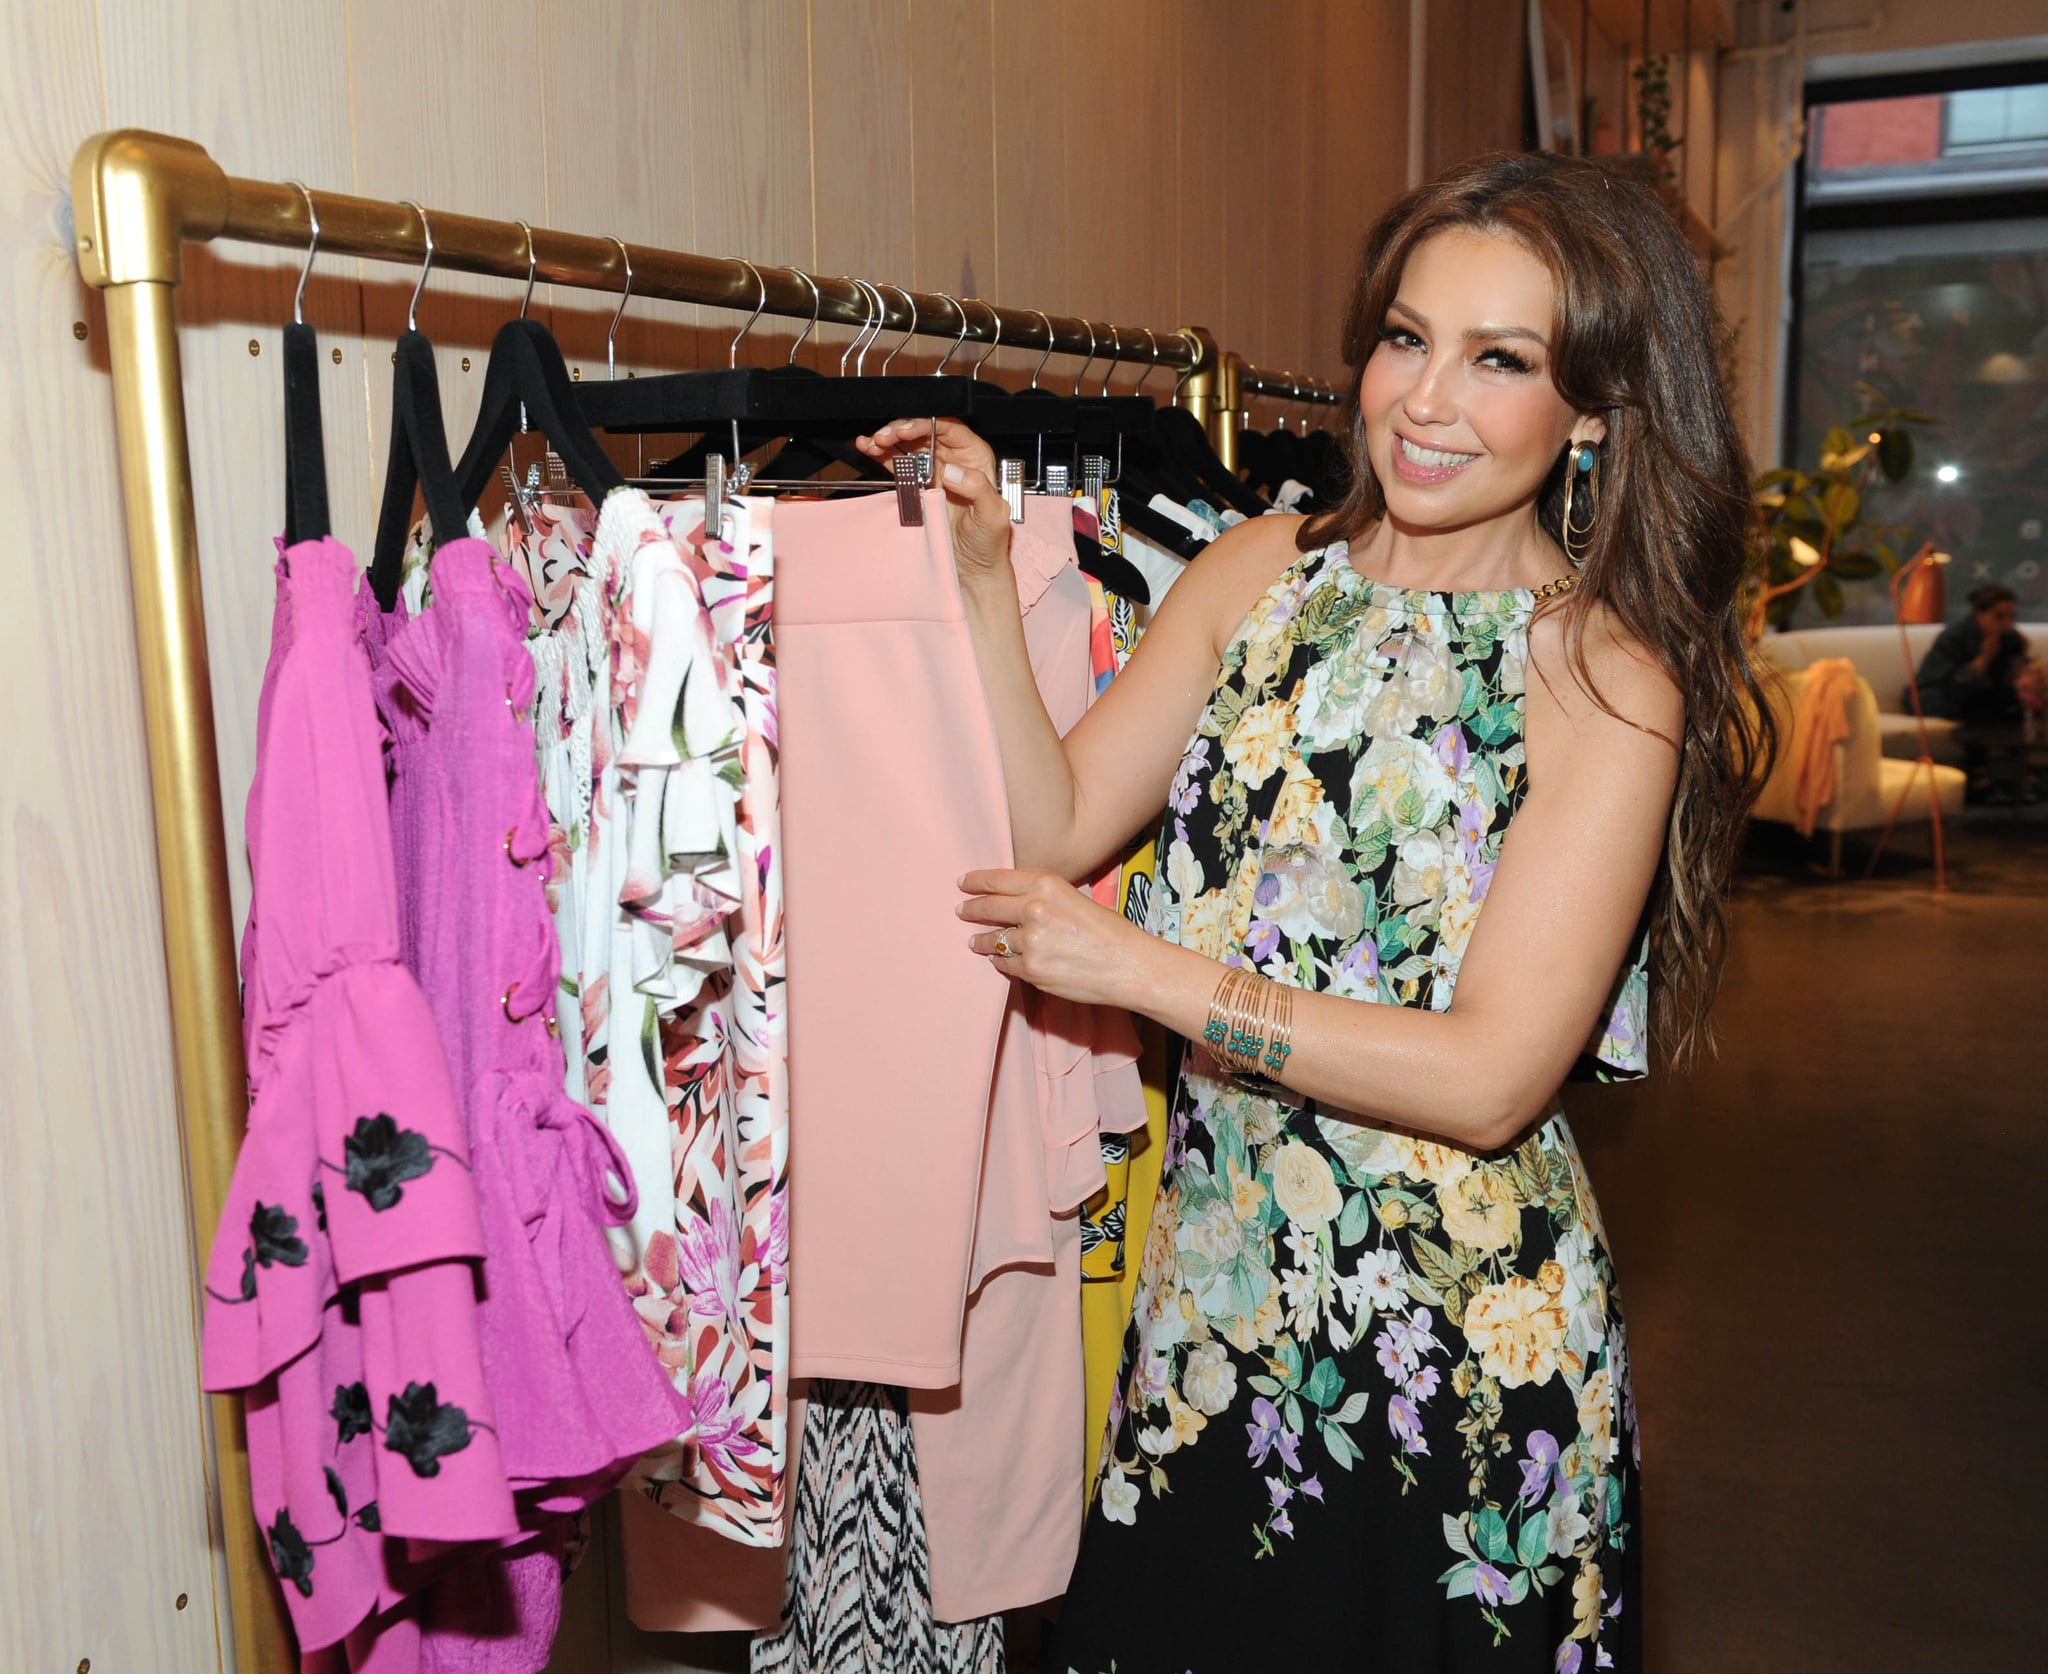 - New York, NY - 05/31/2018 -  Thalia Sodi Celebrates Summer `18 Collection Available Exclusively at Macy`s.-PICTURED: Thalia Sodi-PHOTO by: Michael Simon/startraksphoto.com-MS457656Editorial - Rights Managed Image - Please contact www.startraksphoto.com for licensing fee Startraks PhotoStartraks PhotoNew York, NY For licensing please call 212-414-9464 or email sales@startraksphoto.comImage may not be published in any way that is or might be deemed defamatory, libelous, pornographic, or obscene. Please consult our sales department for any clarification or question you may haveStartraks Photo reserves the right to pursue unauthorized users of this image. If you violate our intellectual property you may be liable for actual damages, loss of income, and profits you derive from the use of this image, and where appropriate, the cost of collection and/or statutory damages.